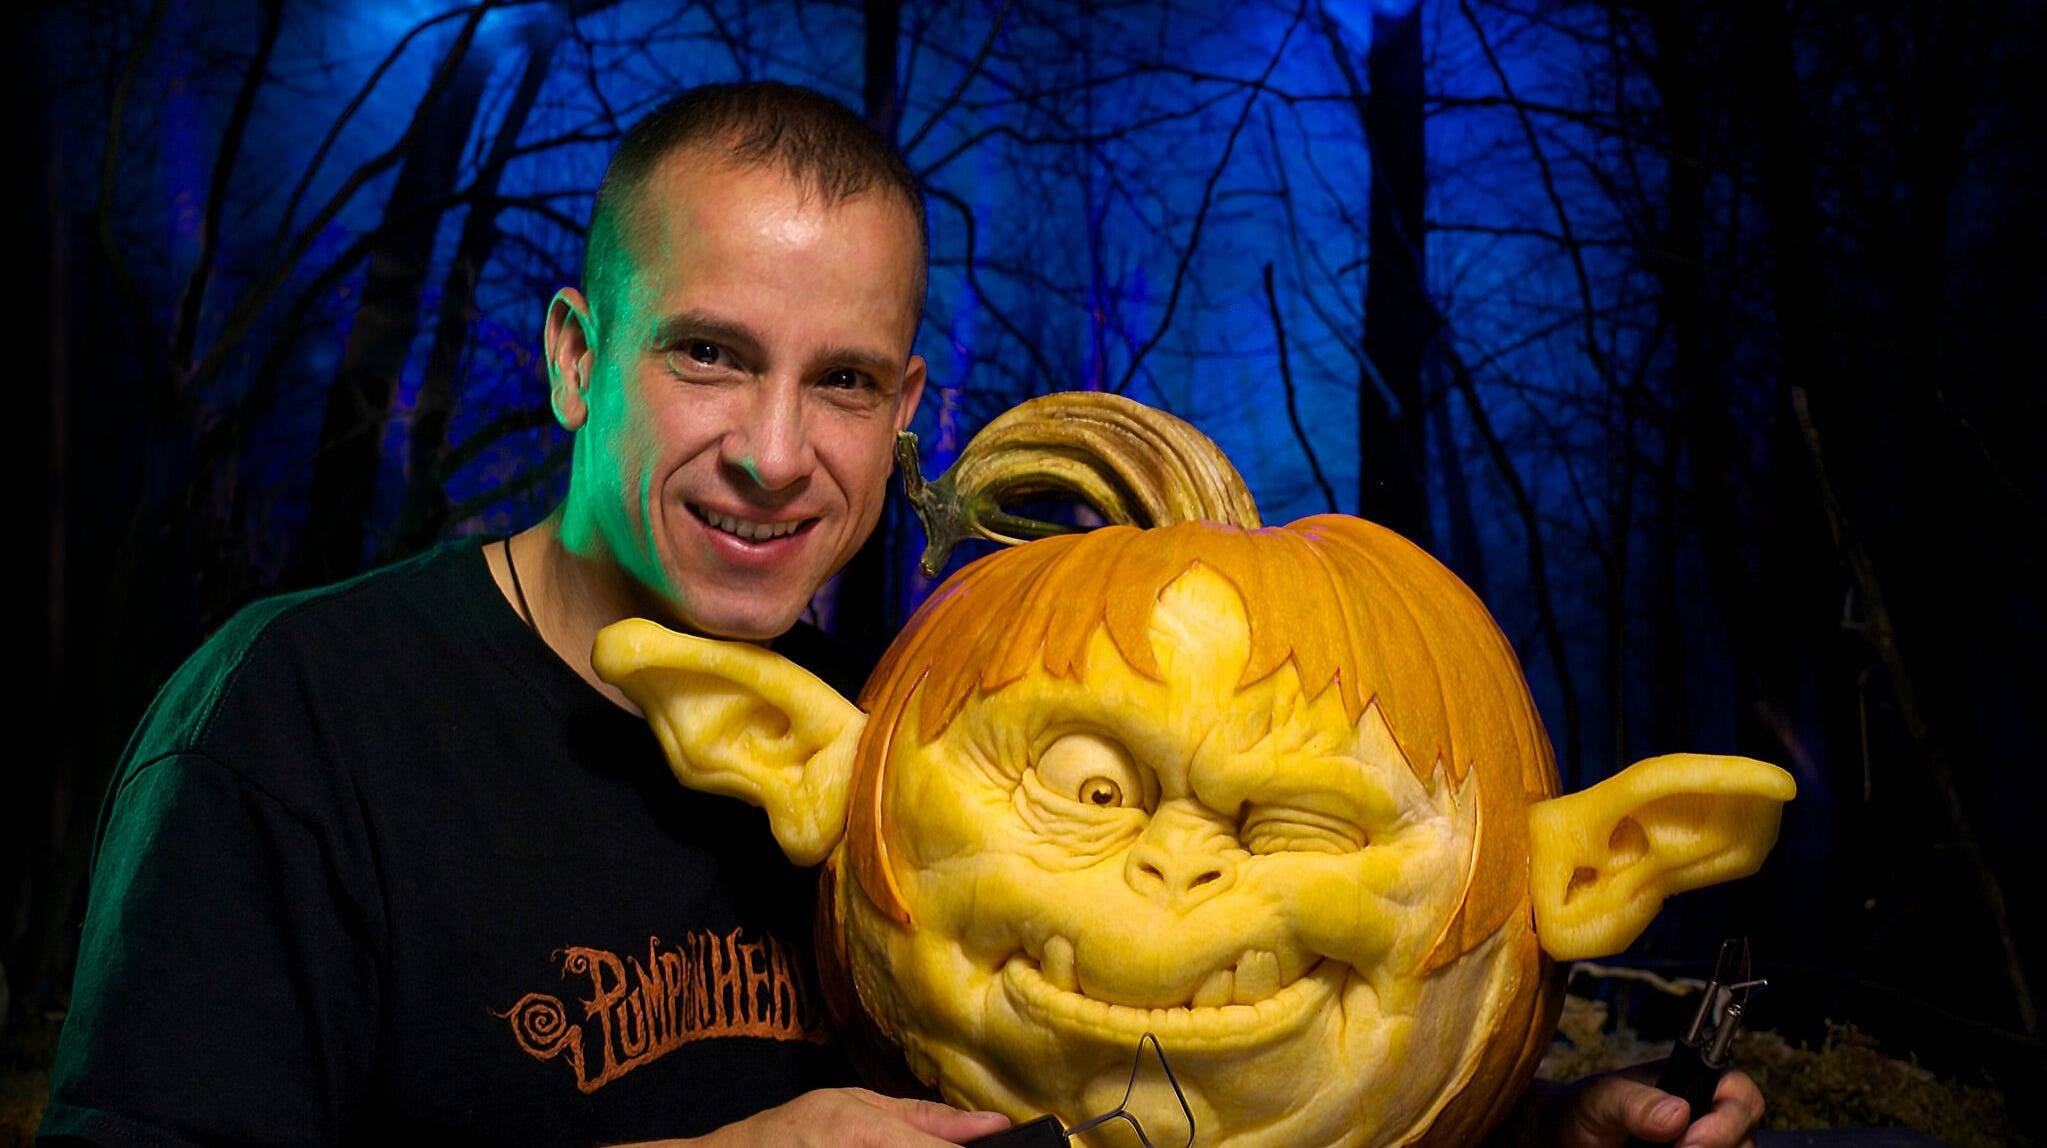 Ray Villafane of Villafane Studios in Carefree, Ariz. is one of the world's best pumpkin carvers.